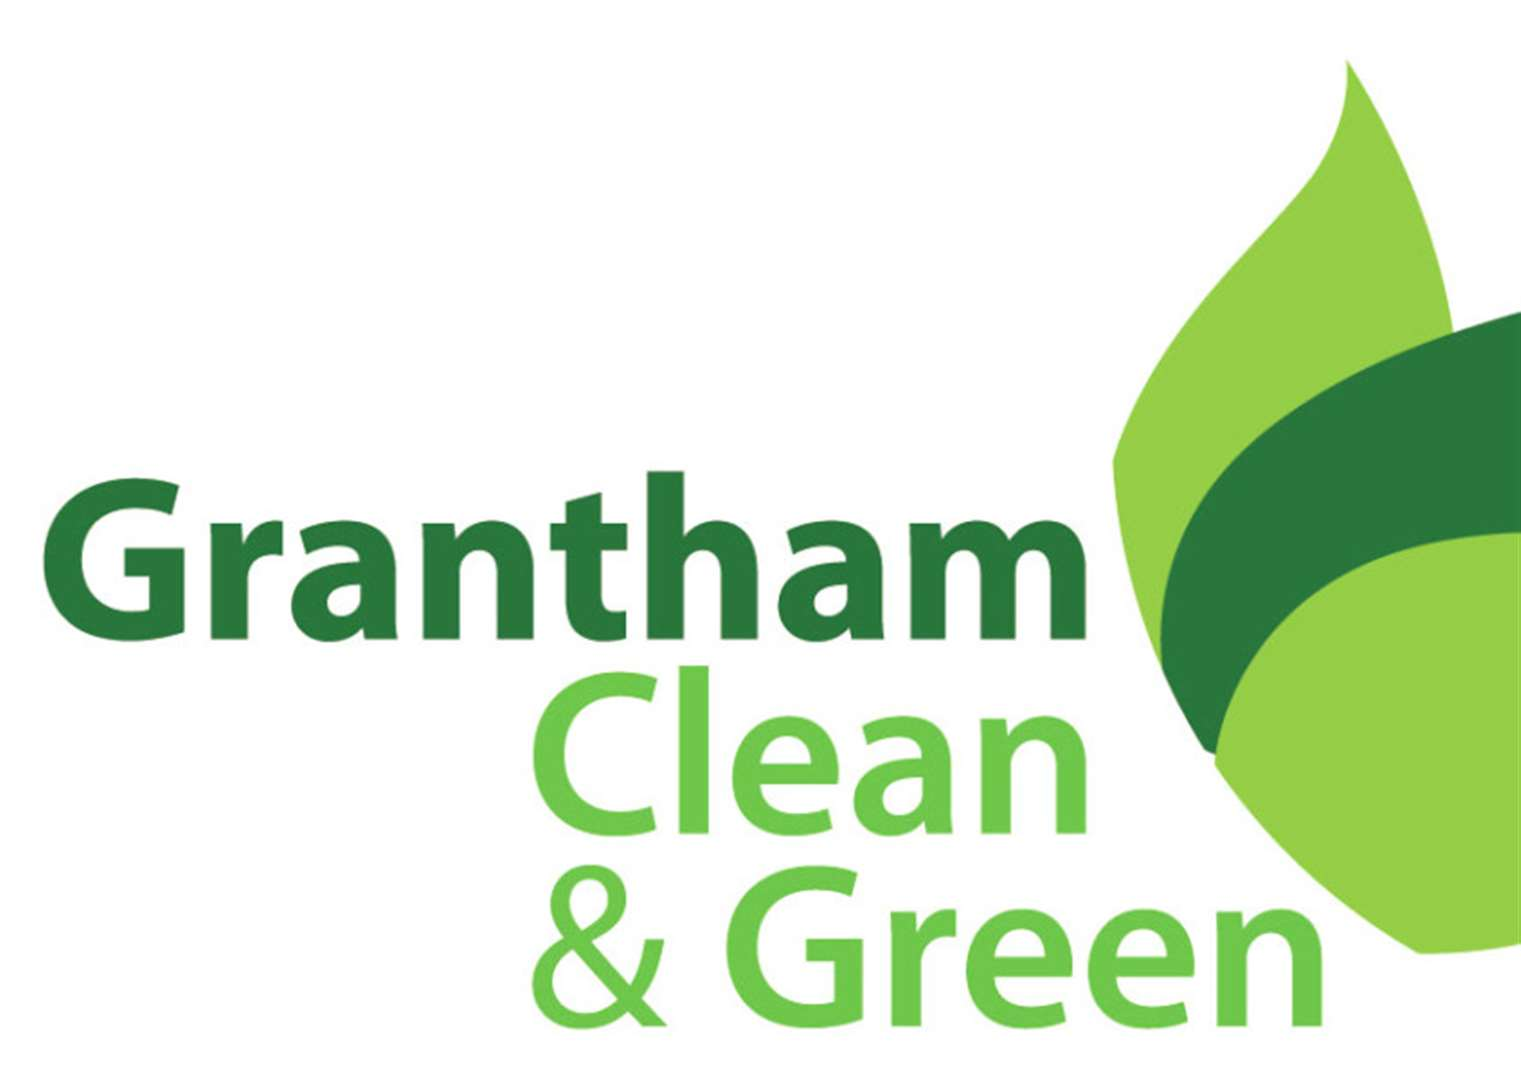 Grantham Clean and Green: Avoid filling public litter bins with household and commercial waste